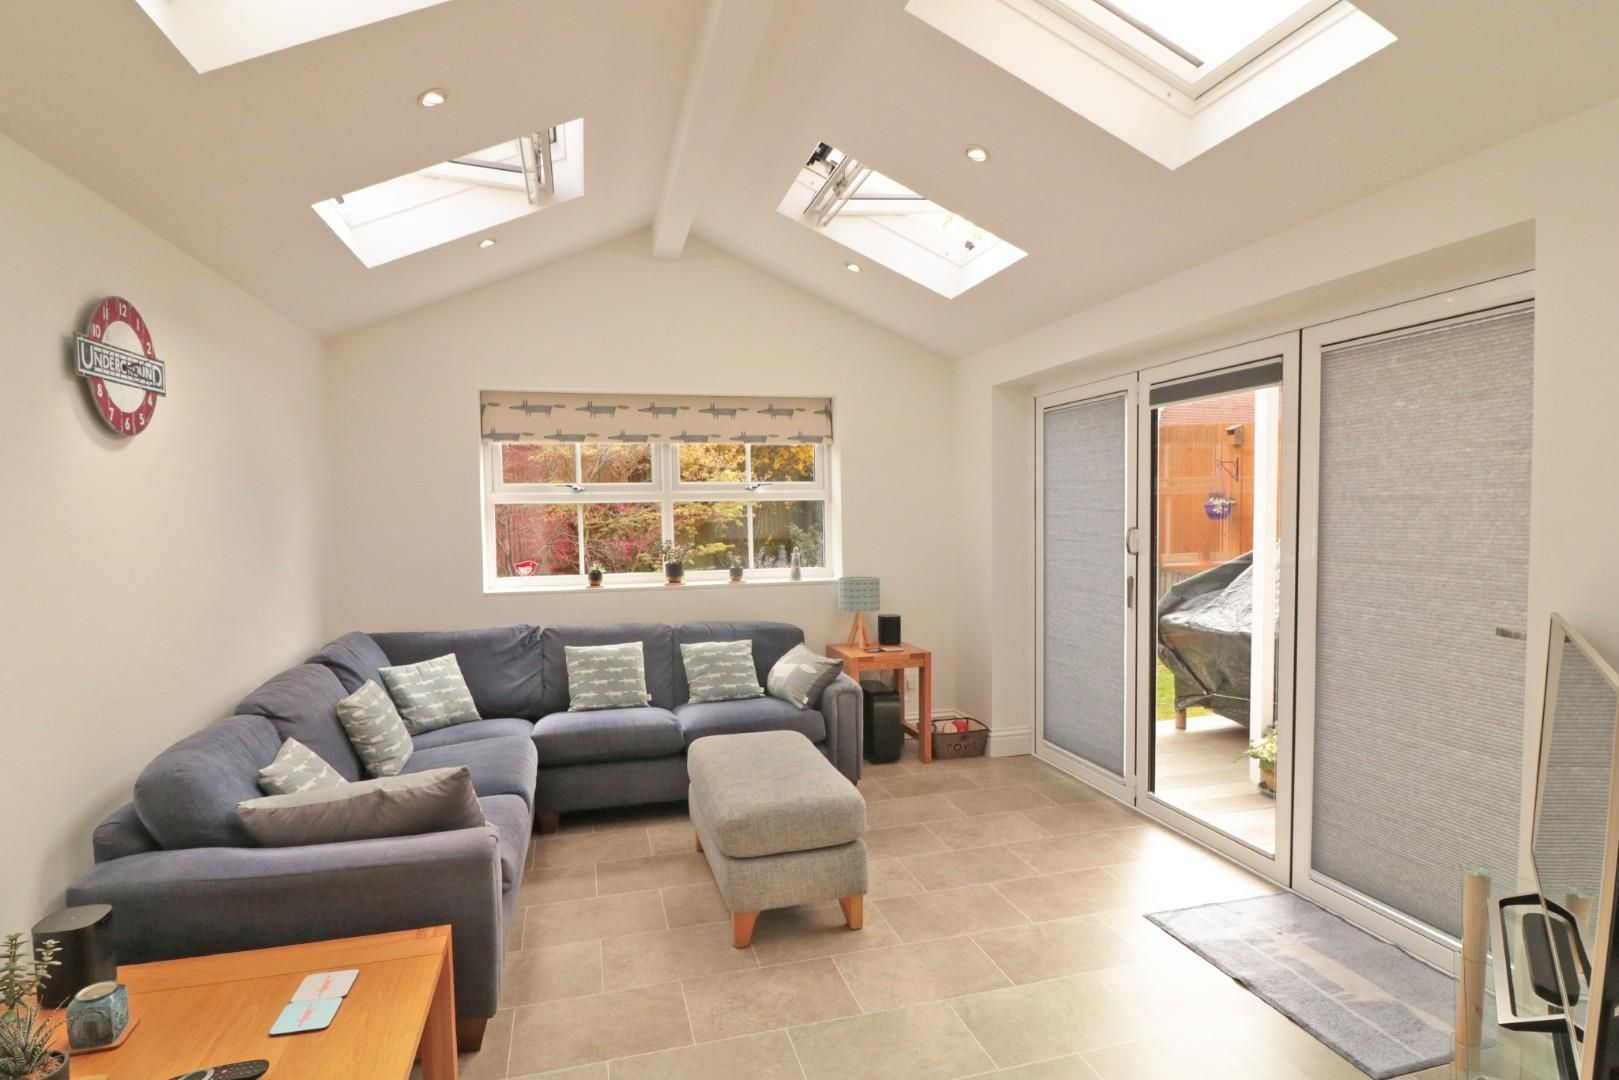 4 bed detached for sale in Binfield 3